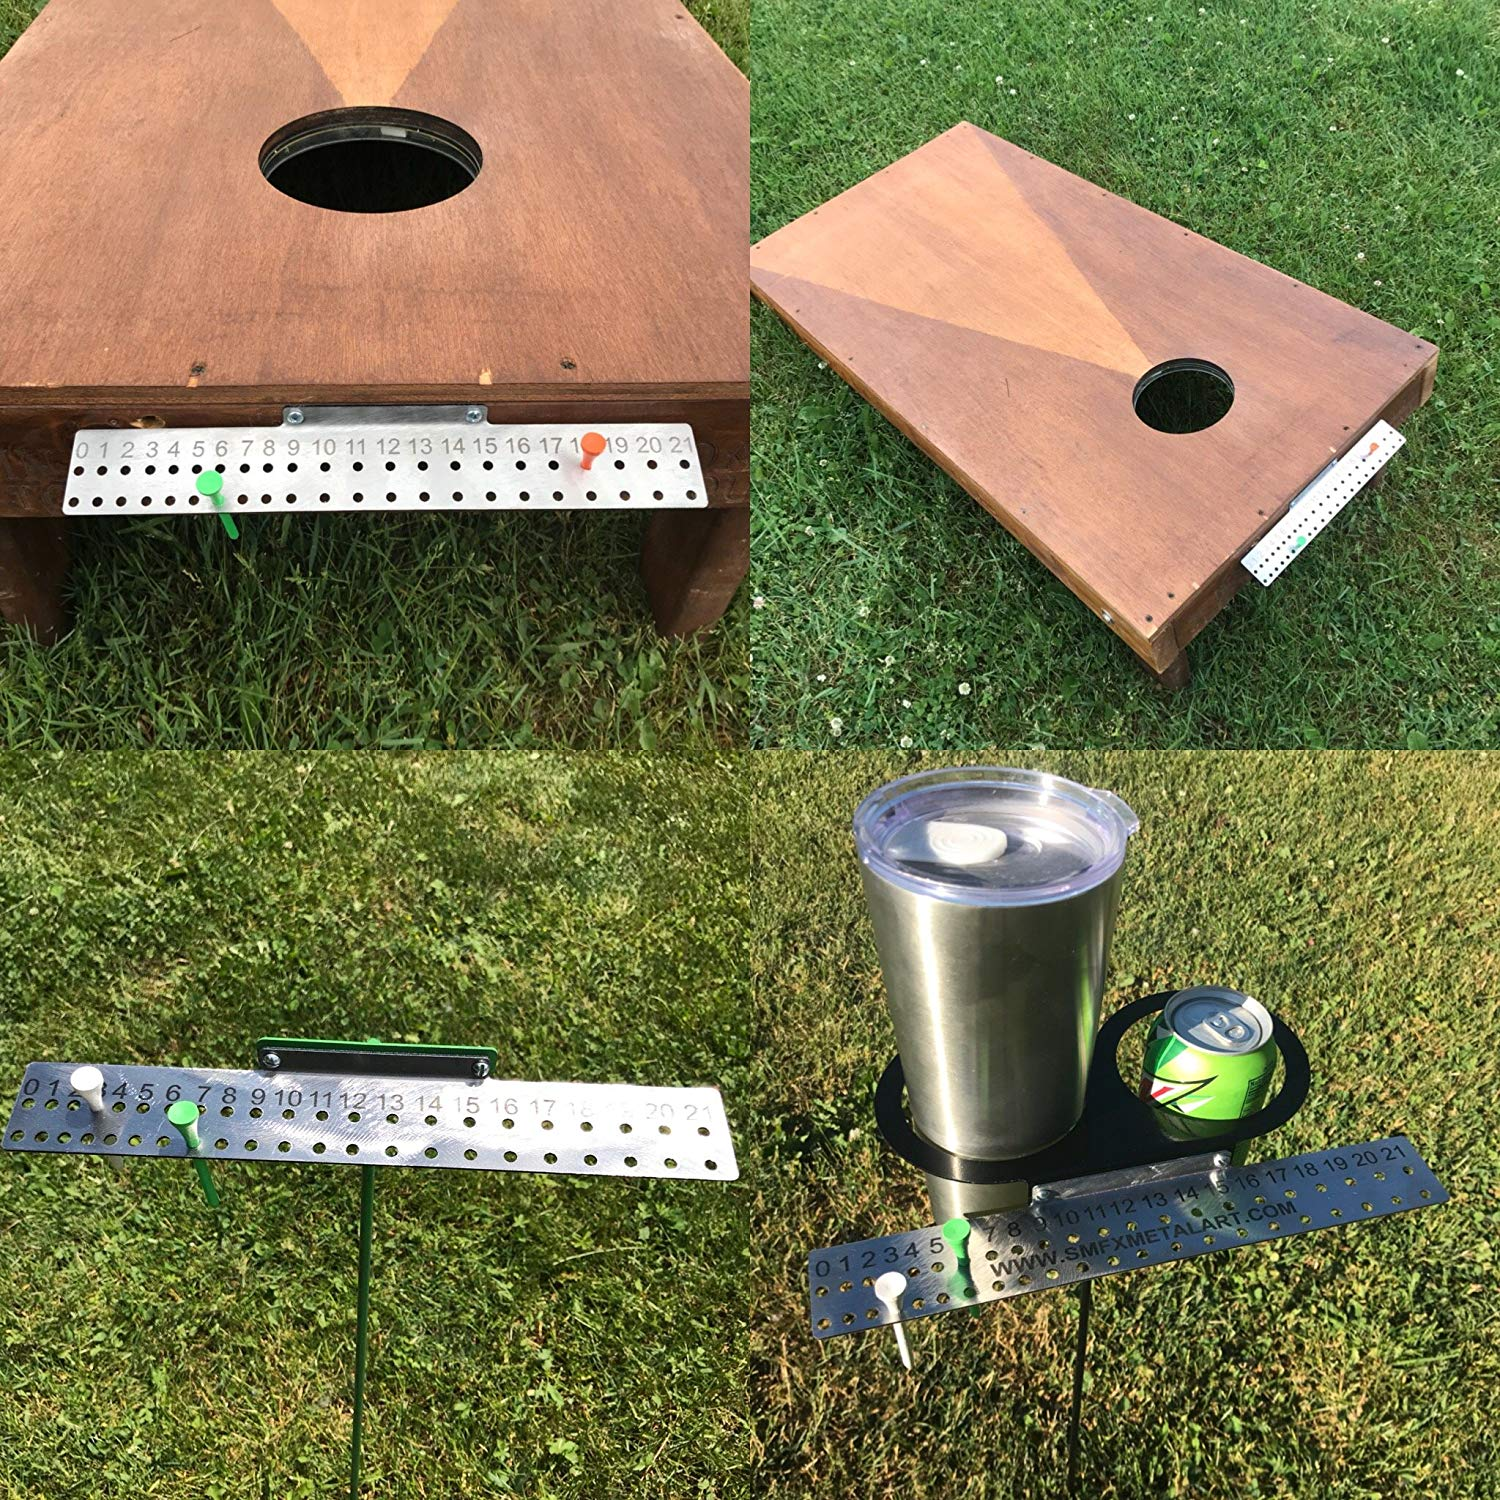 Premium Cornhole Scoreboard with Magnetic Score Keepers Mounts to Any Board